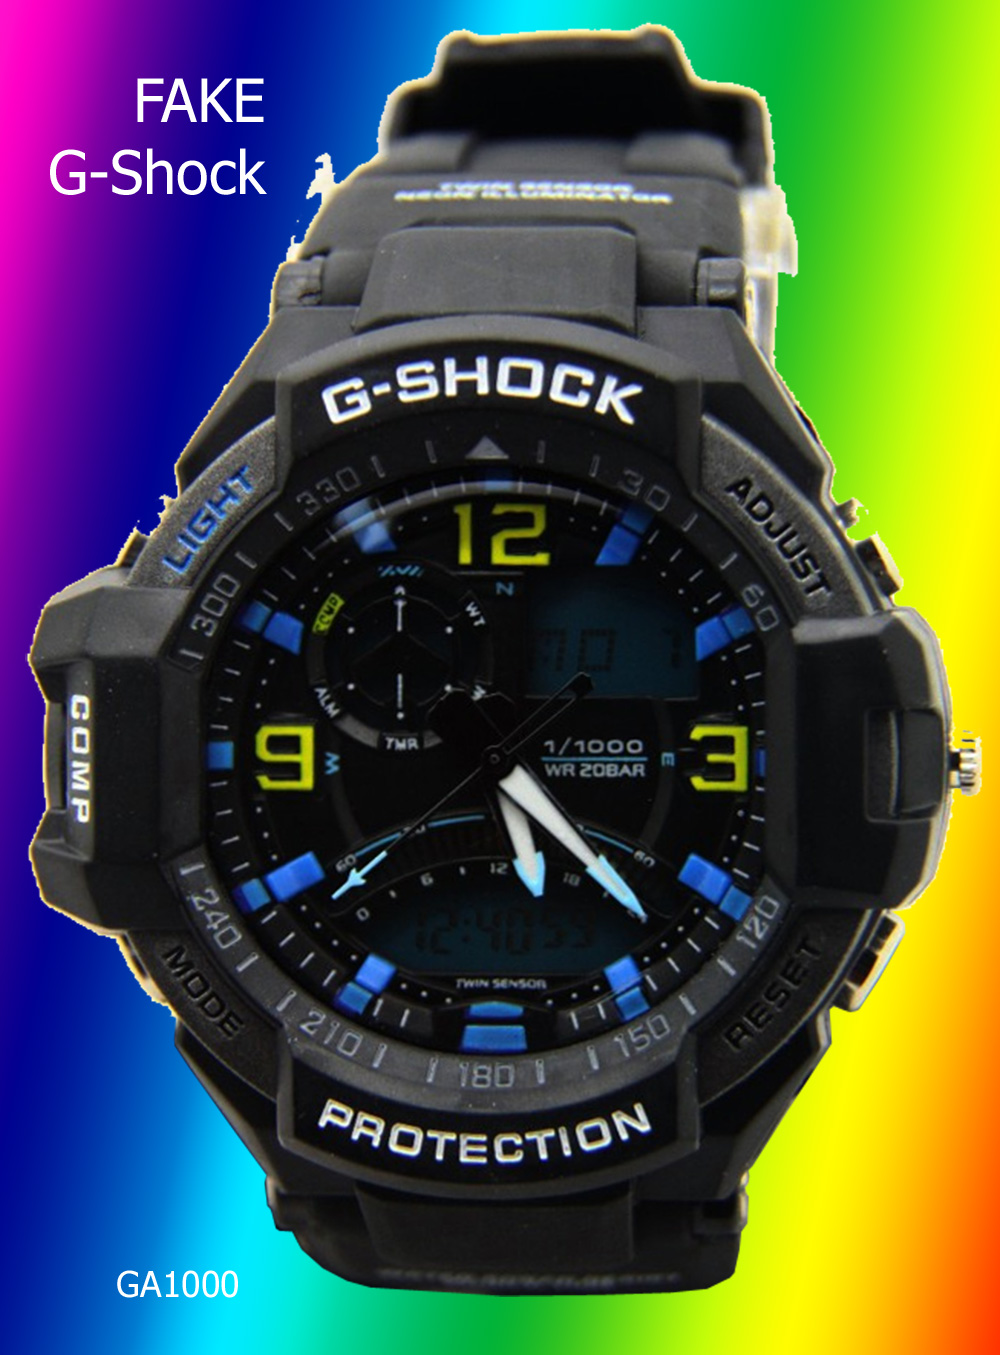 Replica g shock watches - Fake G Shock Watches On Amazon